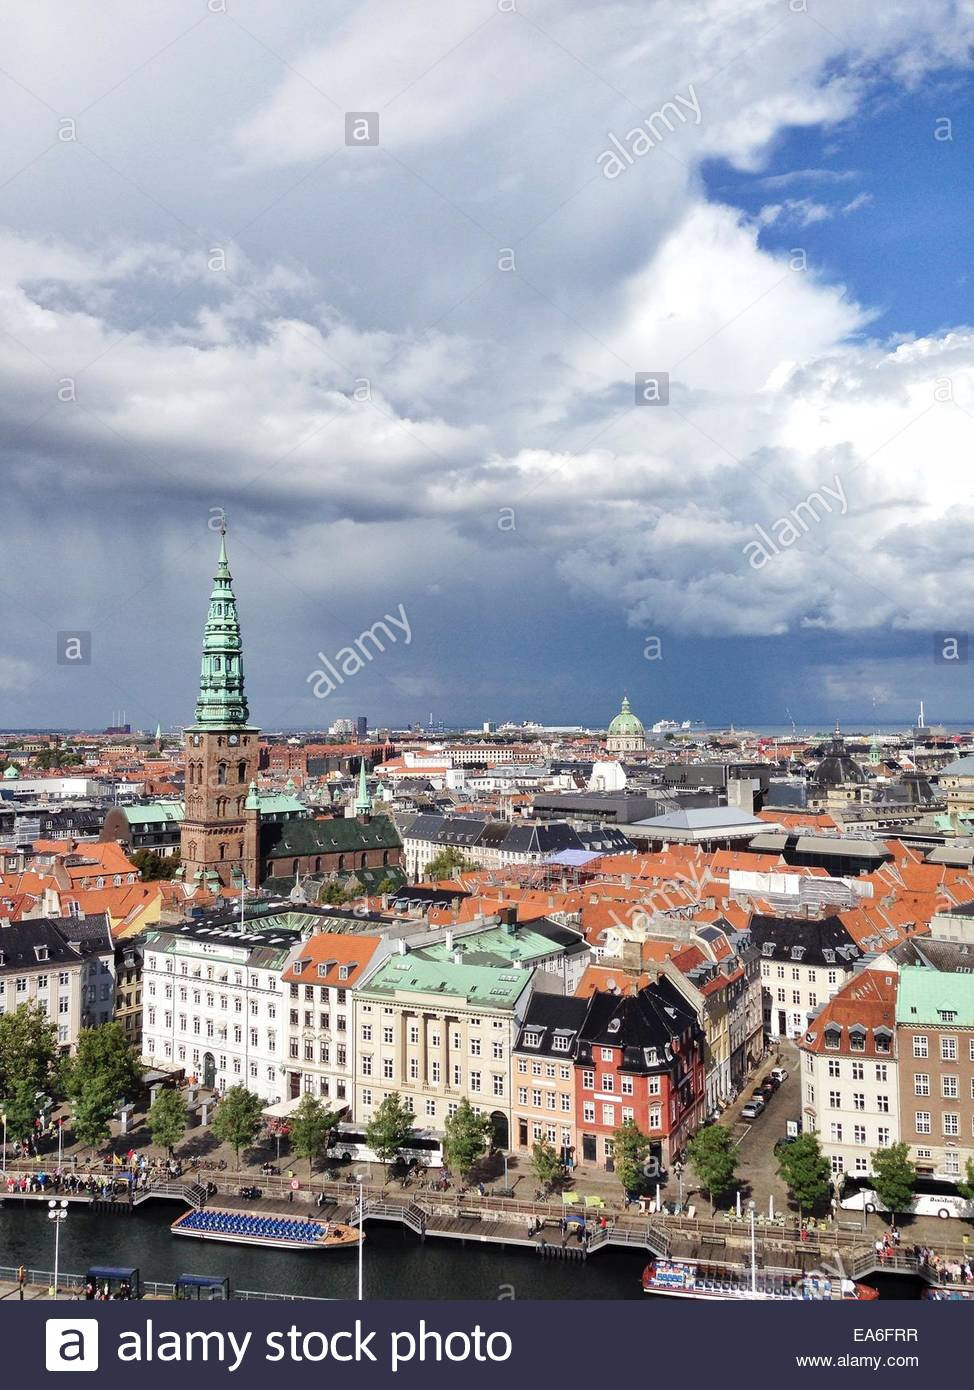 Denmark, Elevated view of Copenhagen cityscape - Stock Image